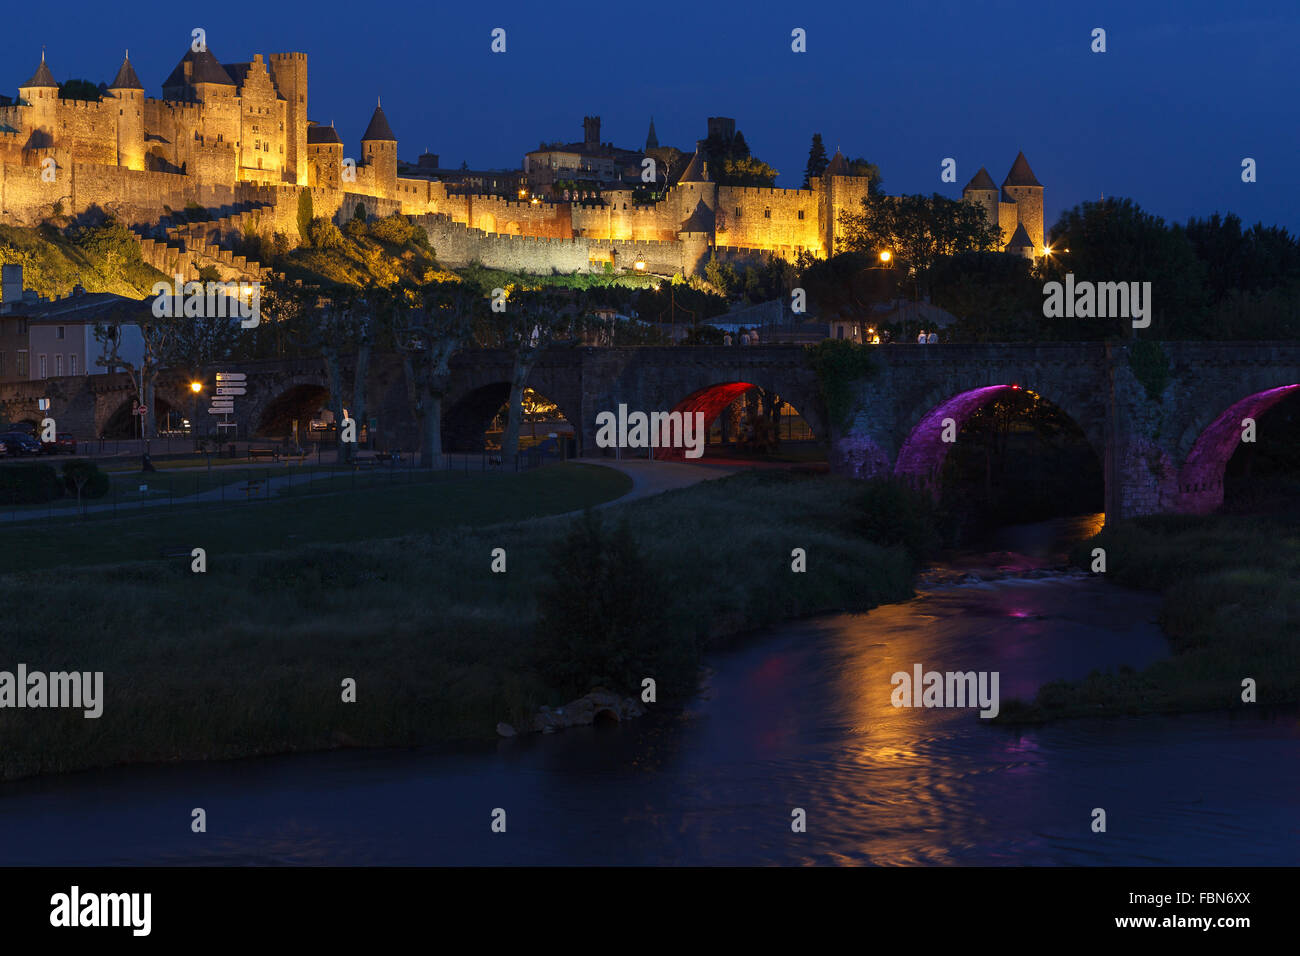 The fortified Cite de Carcassonne by the Aude River at night, Aude department, Languedoc-Roussillon region, France, - Stock Image